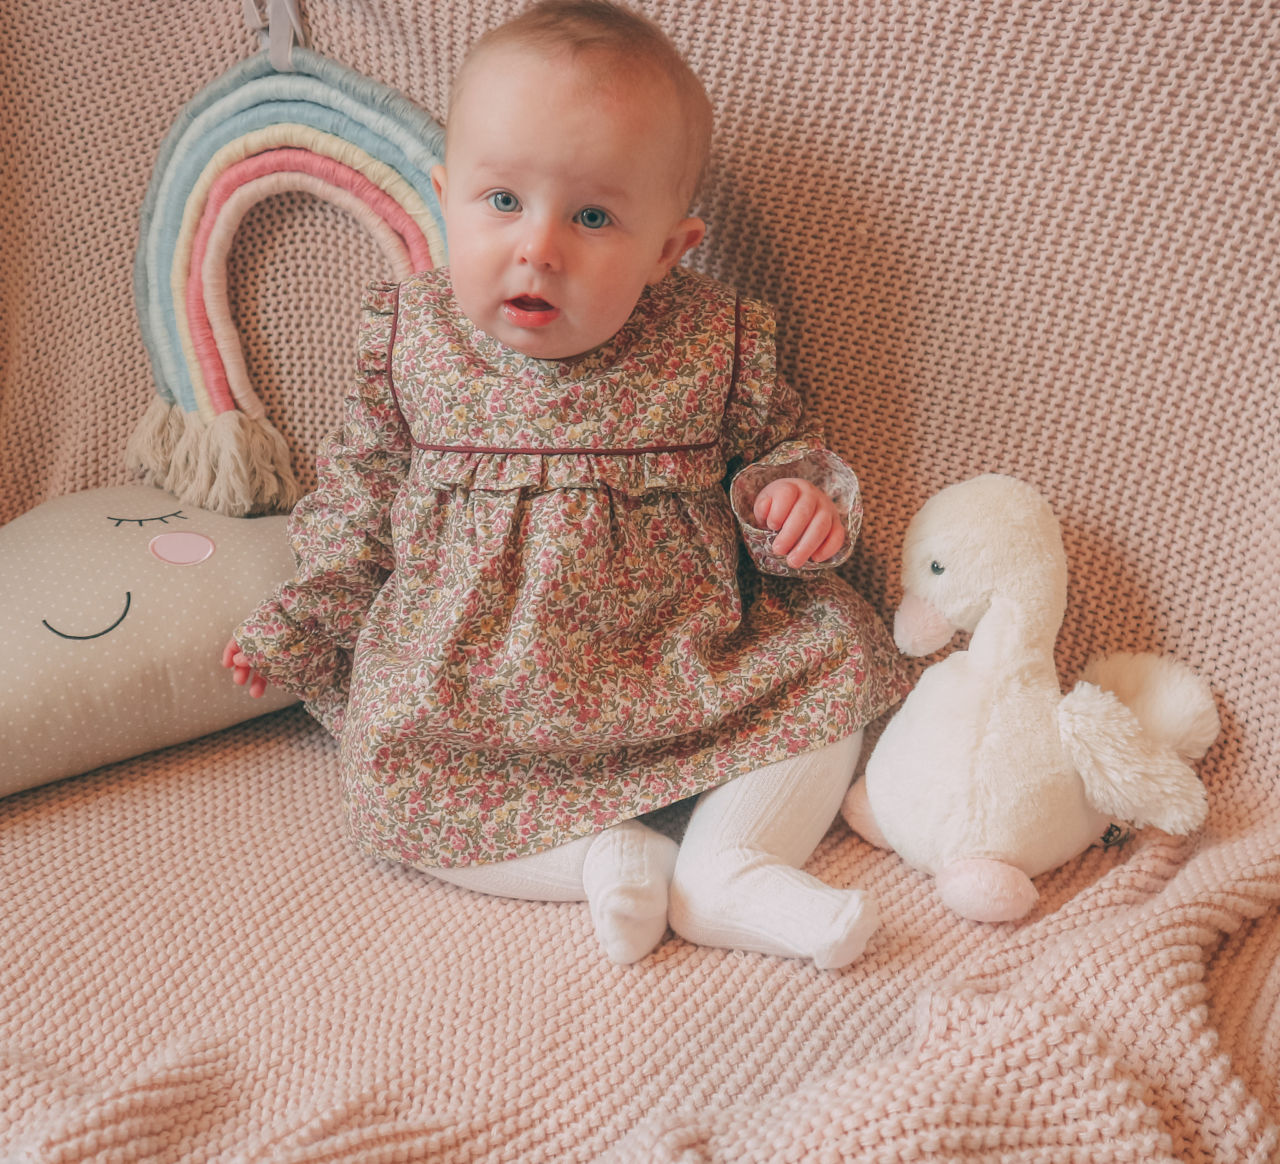 La Coqueta baby outfit review